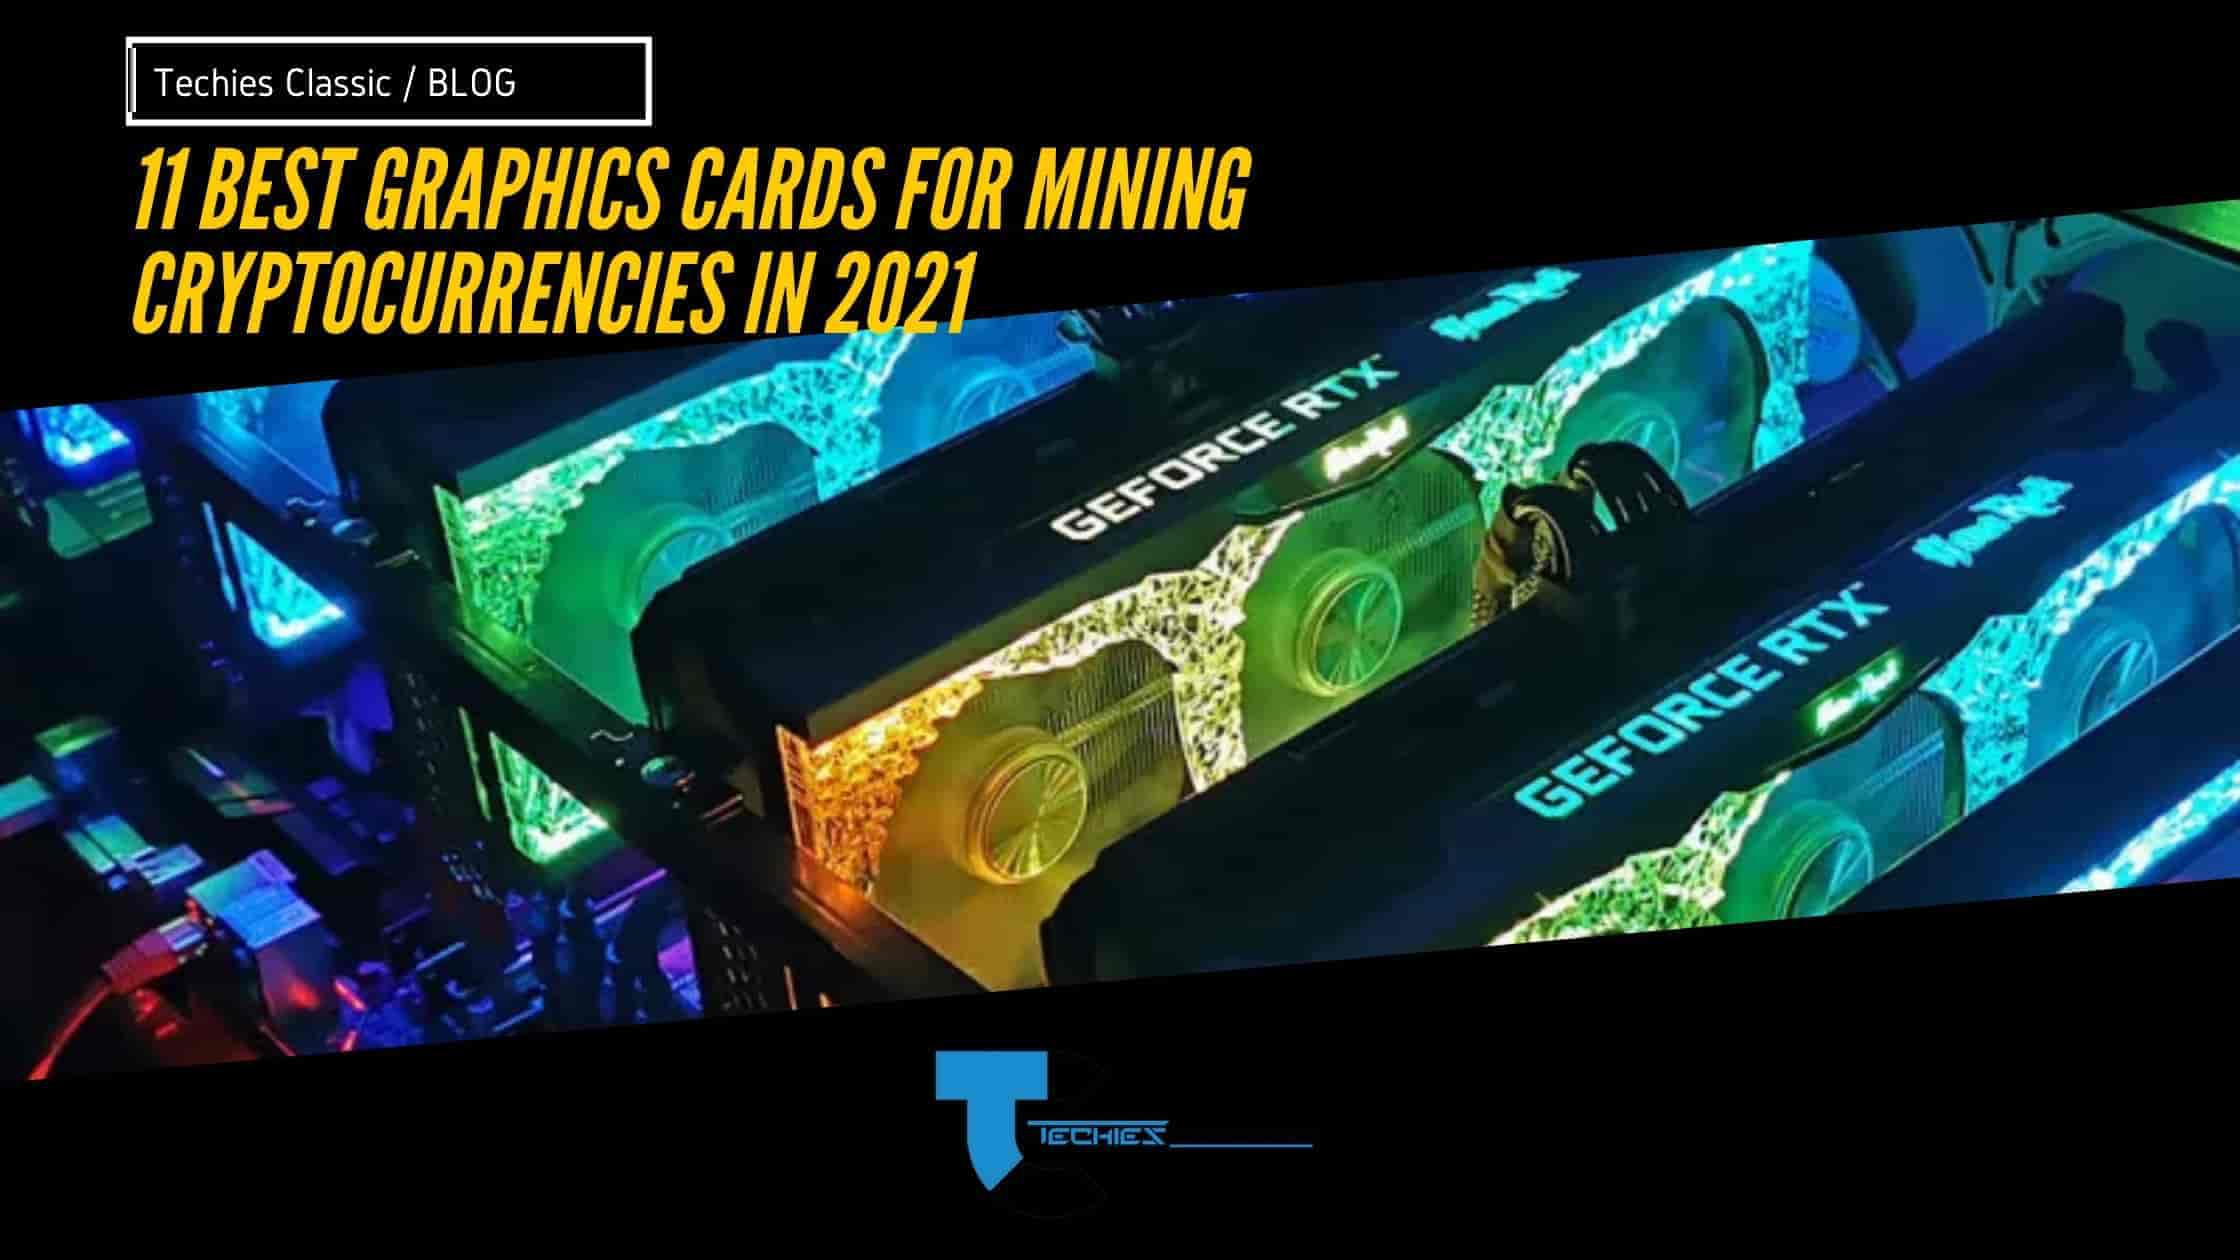 10 best graphics cards for mining cryptocurrencies in 2021